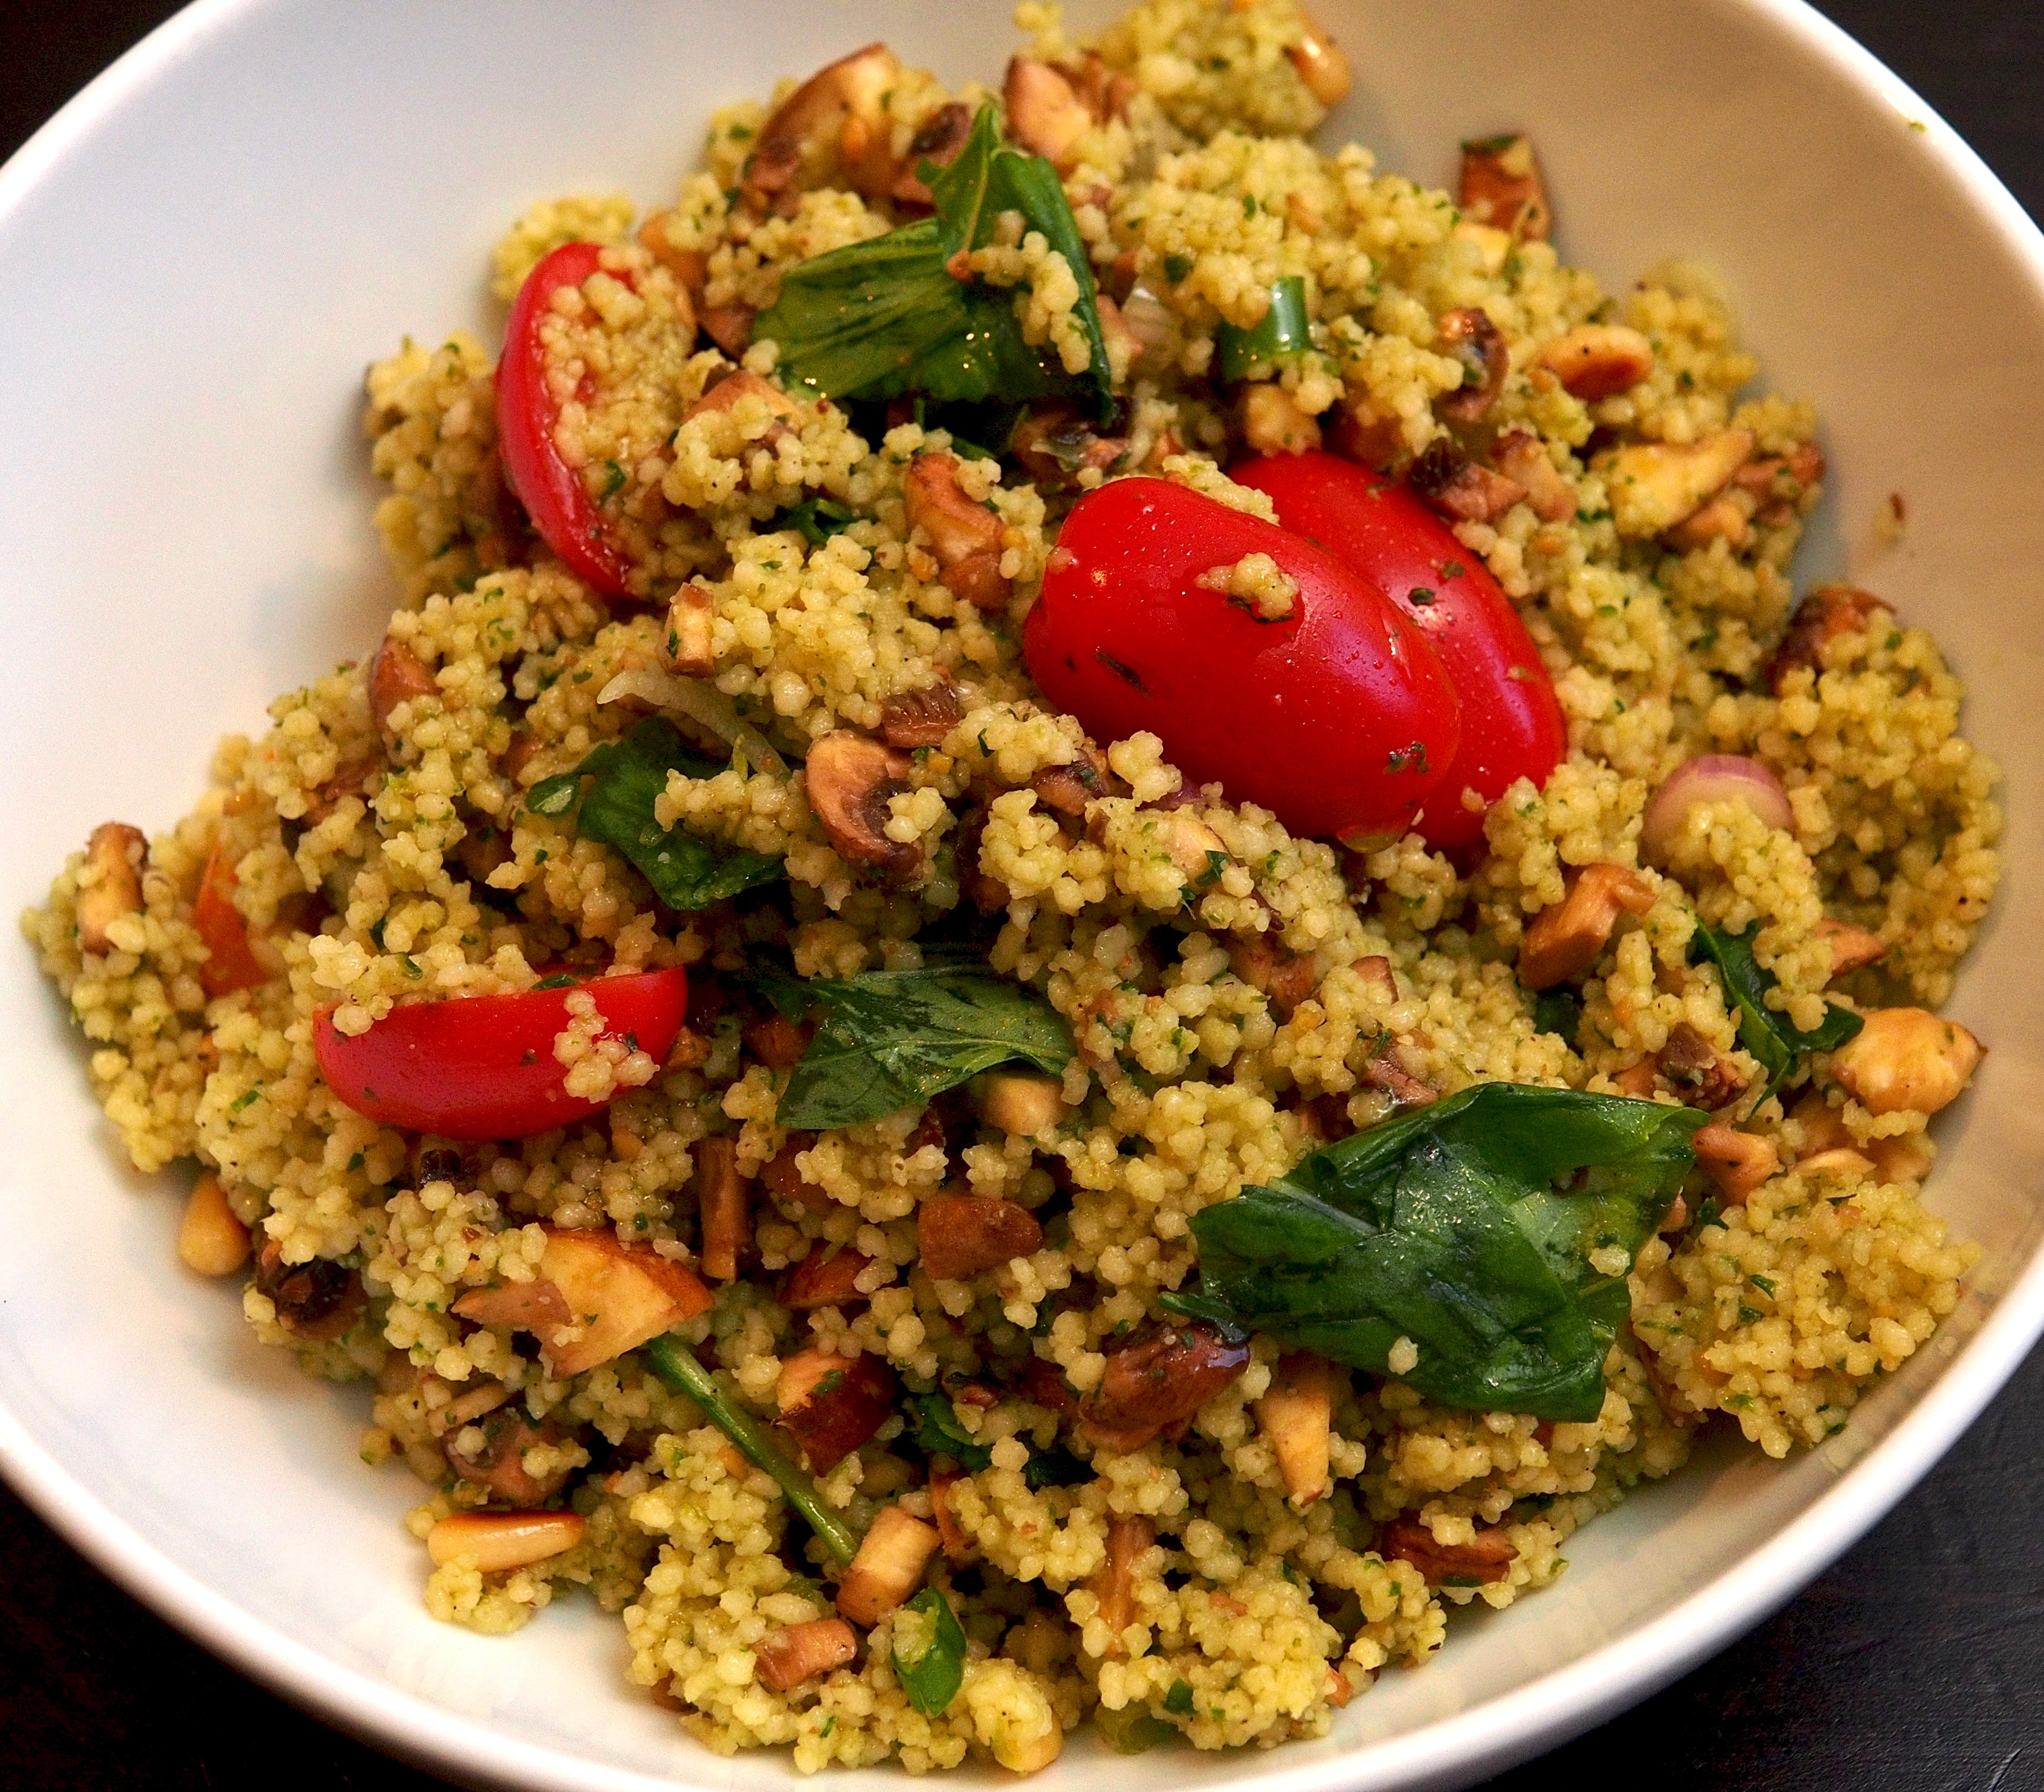 Thrill of grill couscous